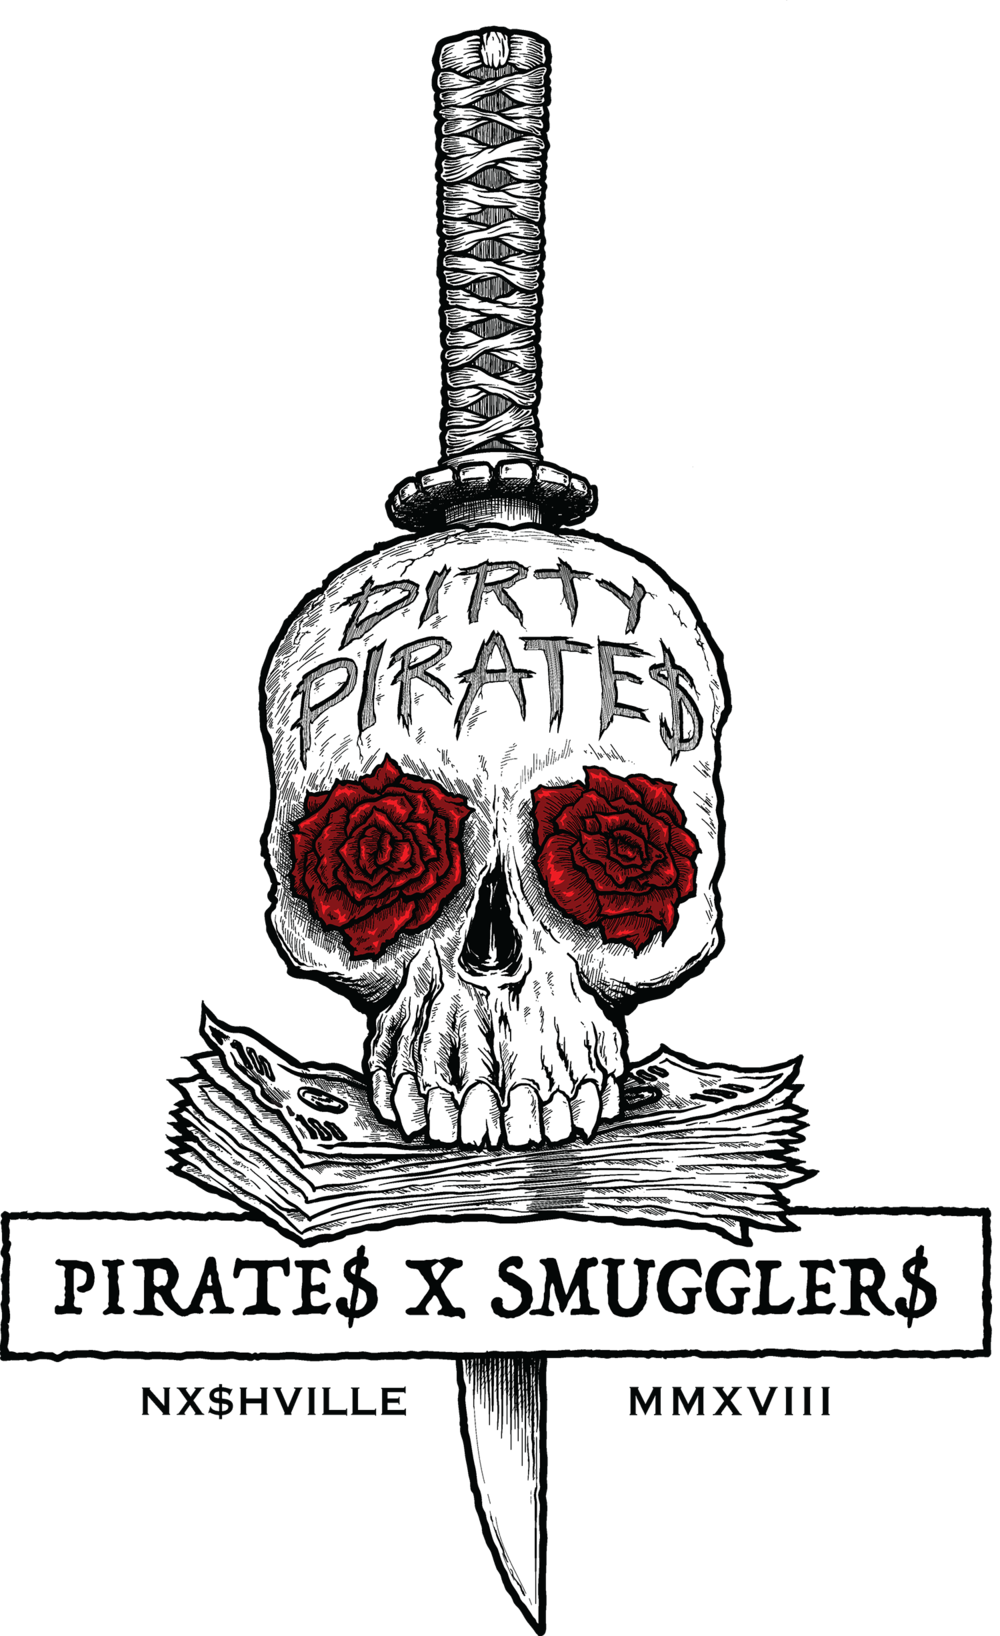 PIRATES X SMUGGLERS LOGO, VECTOR ILLUSTRATION